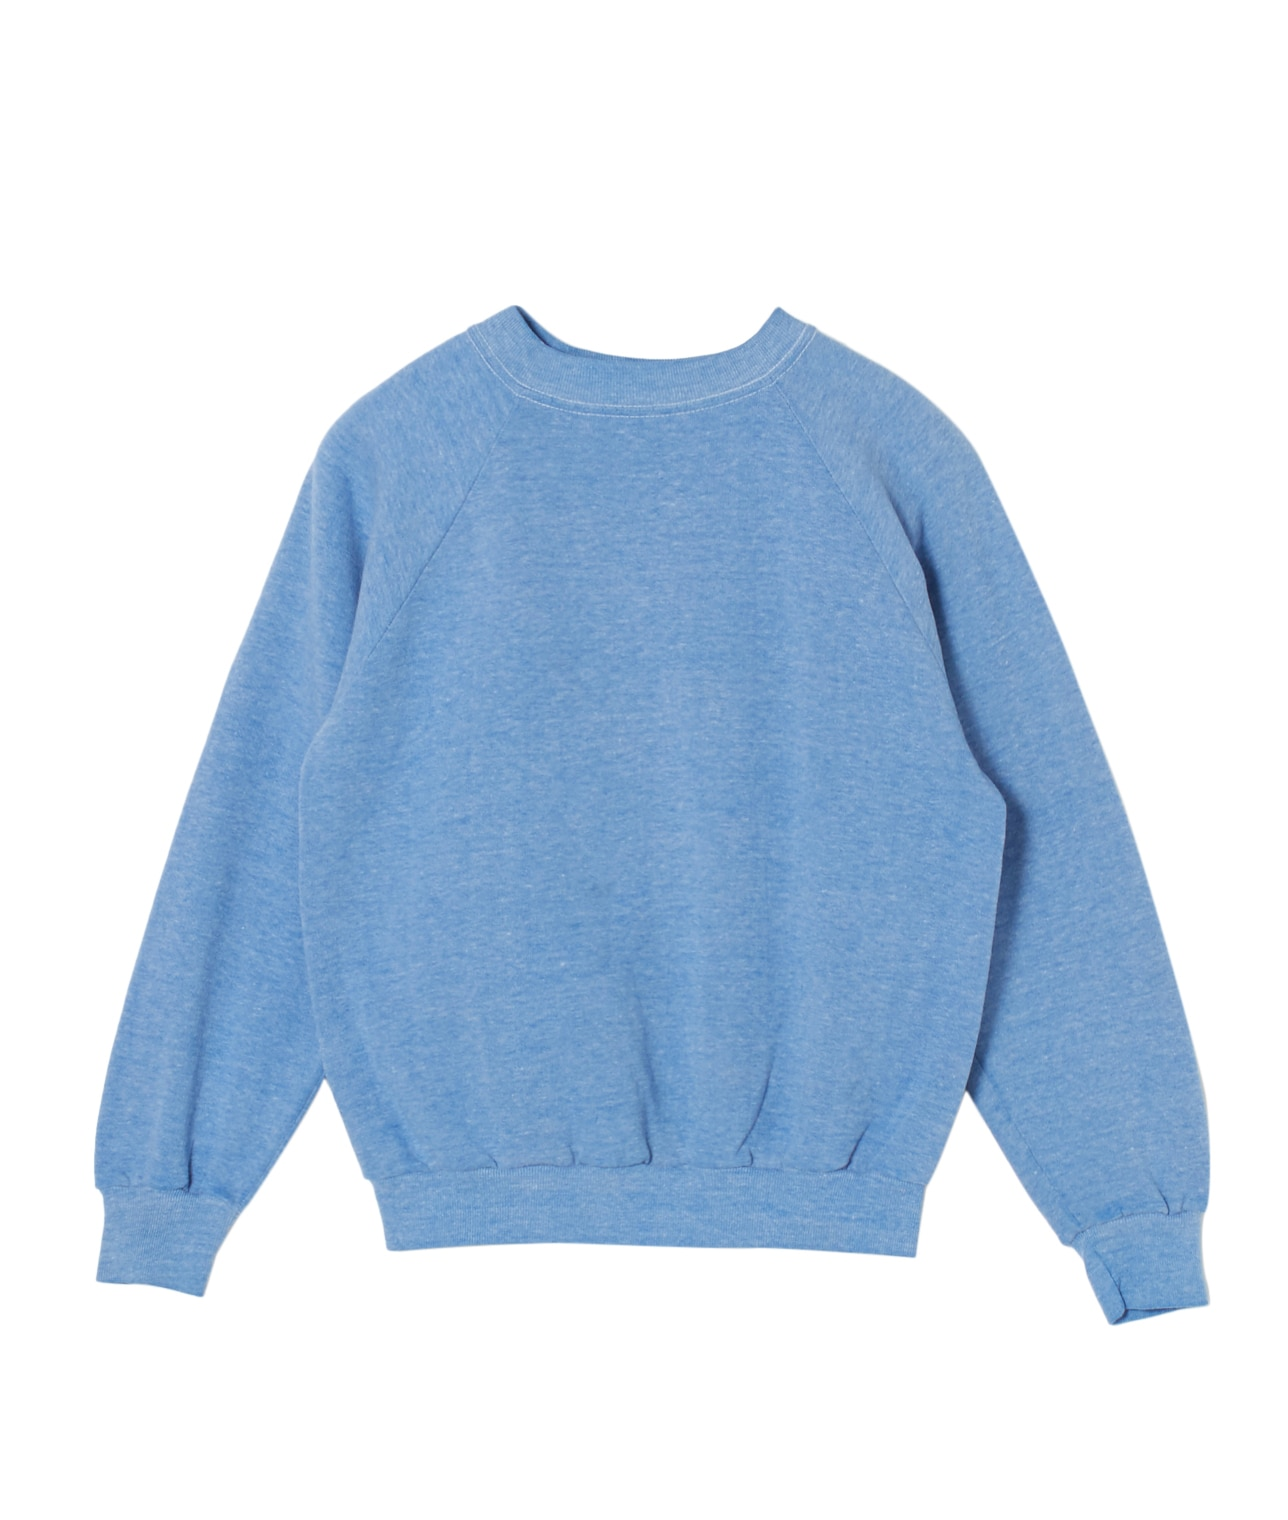 USED/UNKNOWN BRAND PLAIN SWEAT SHIRT 詳細画像 BLUE 1